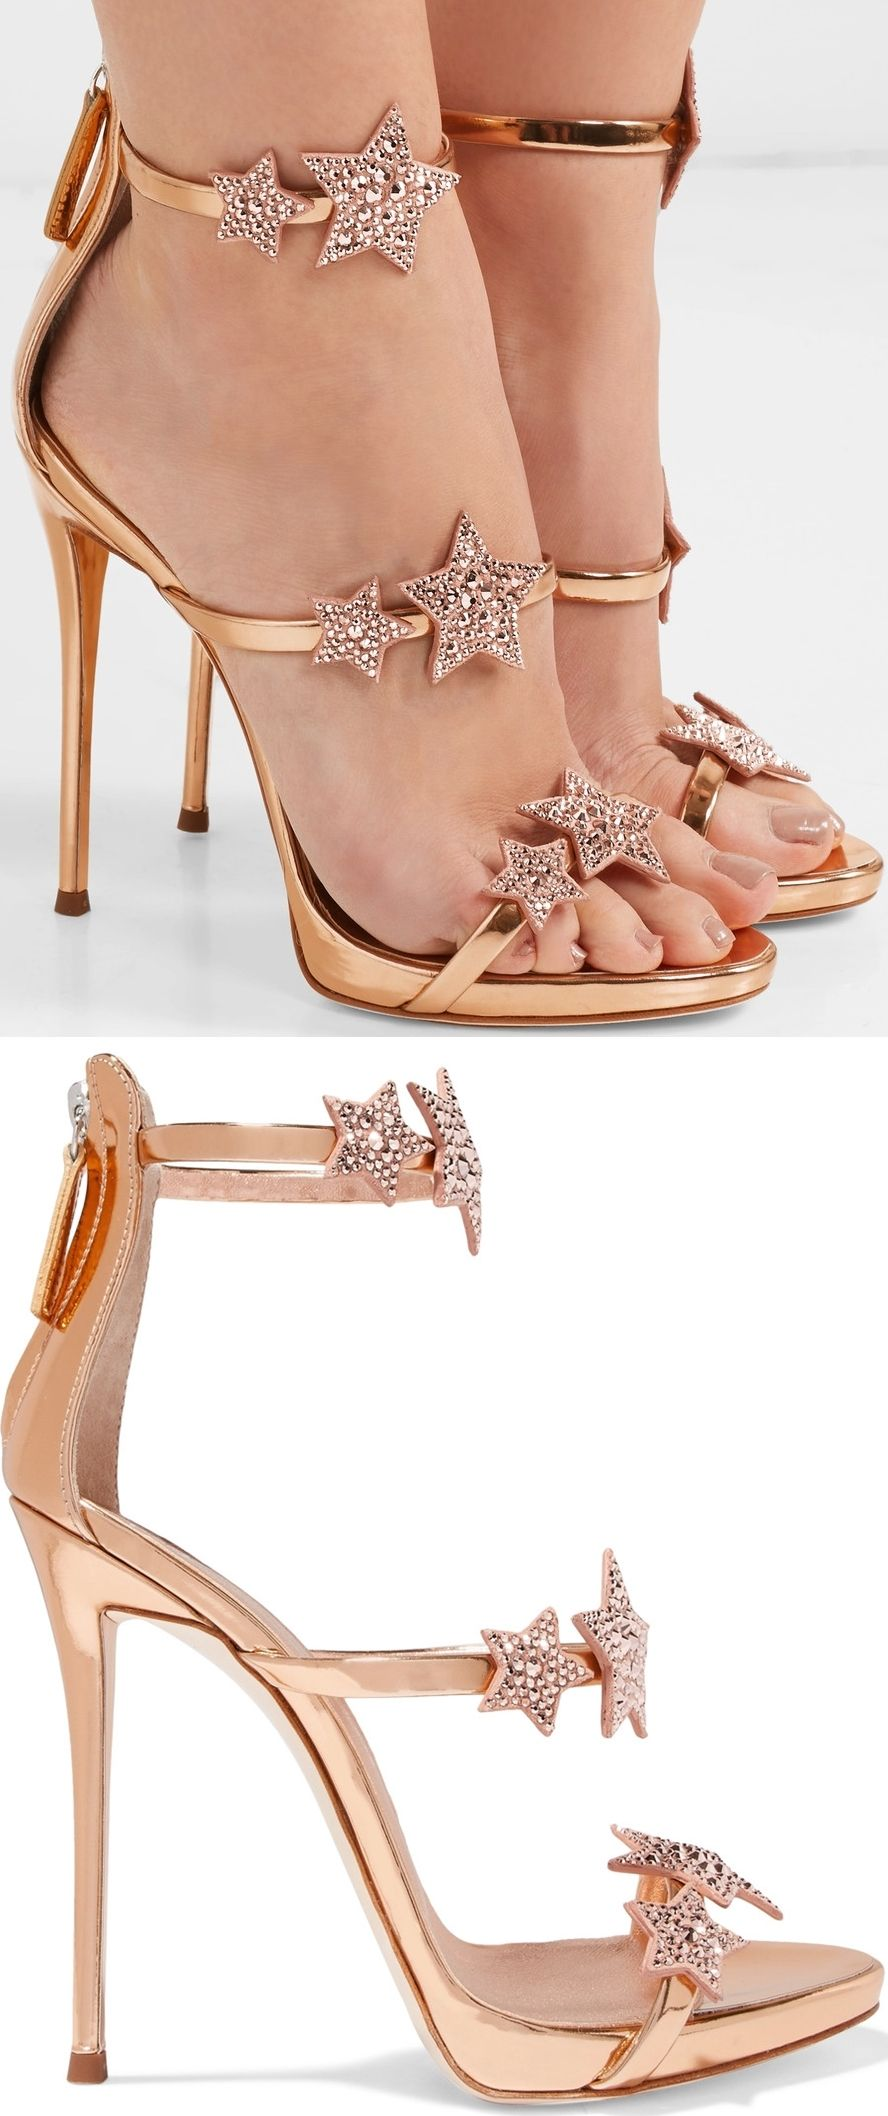 cdac675a04de The slim straps on these rose gold  Coline  sandals are decorated with  crystal-embellished suede star appliqués. Although the heel is high